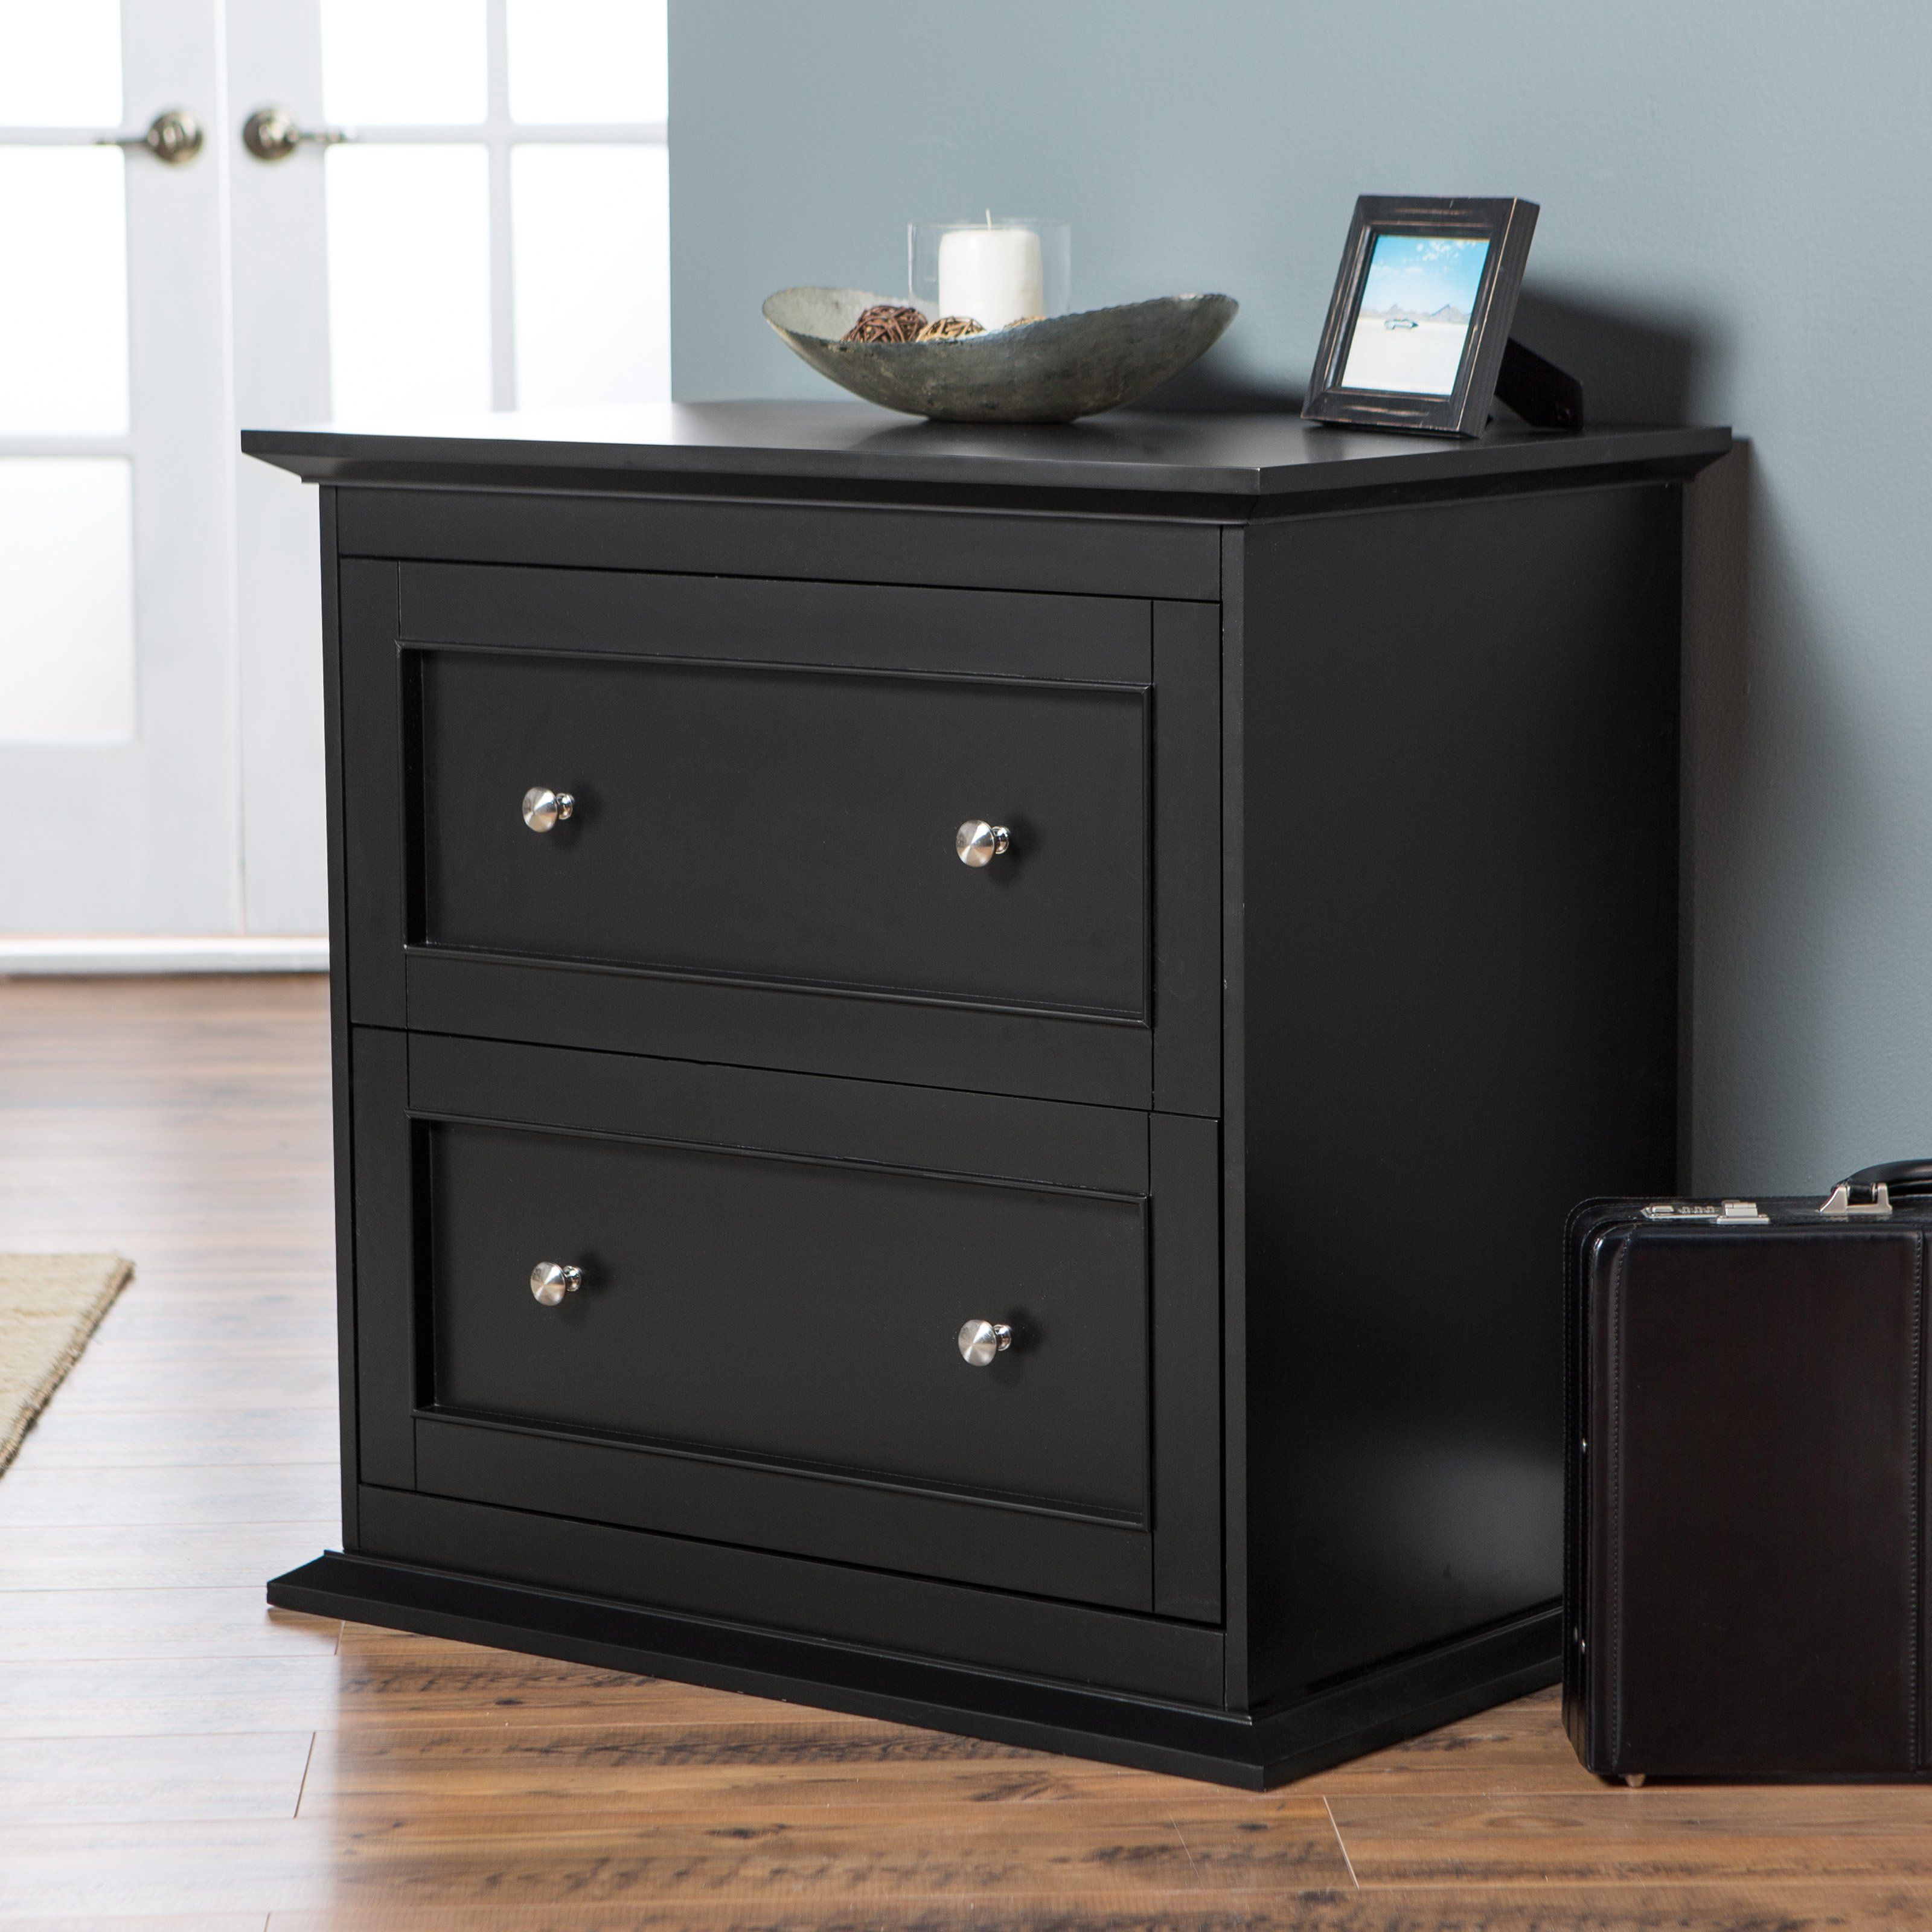 products furnishings img cabinet lateral hon recycled drawers file office drawer